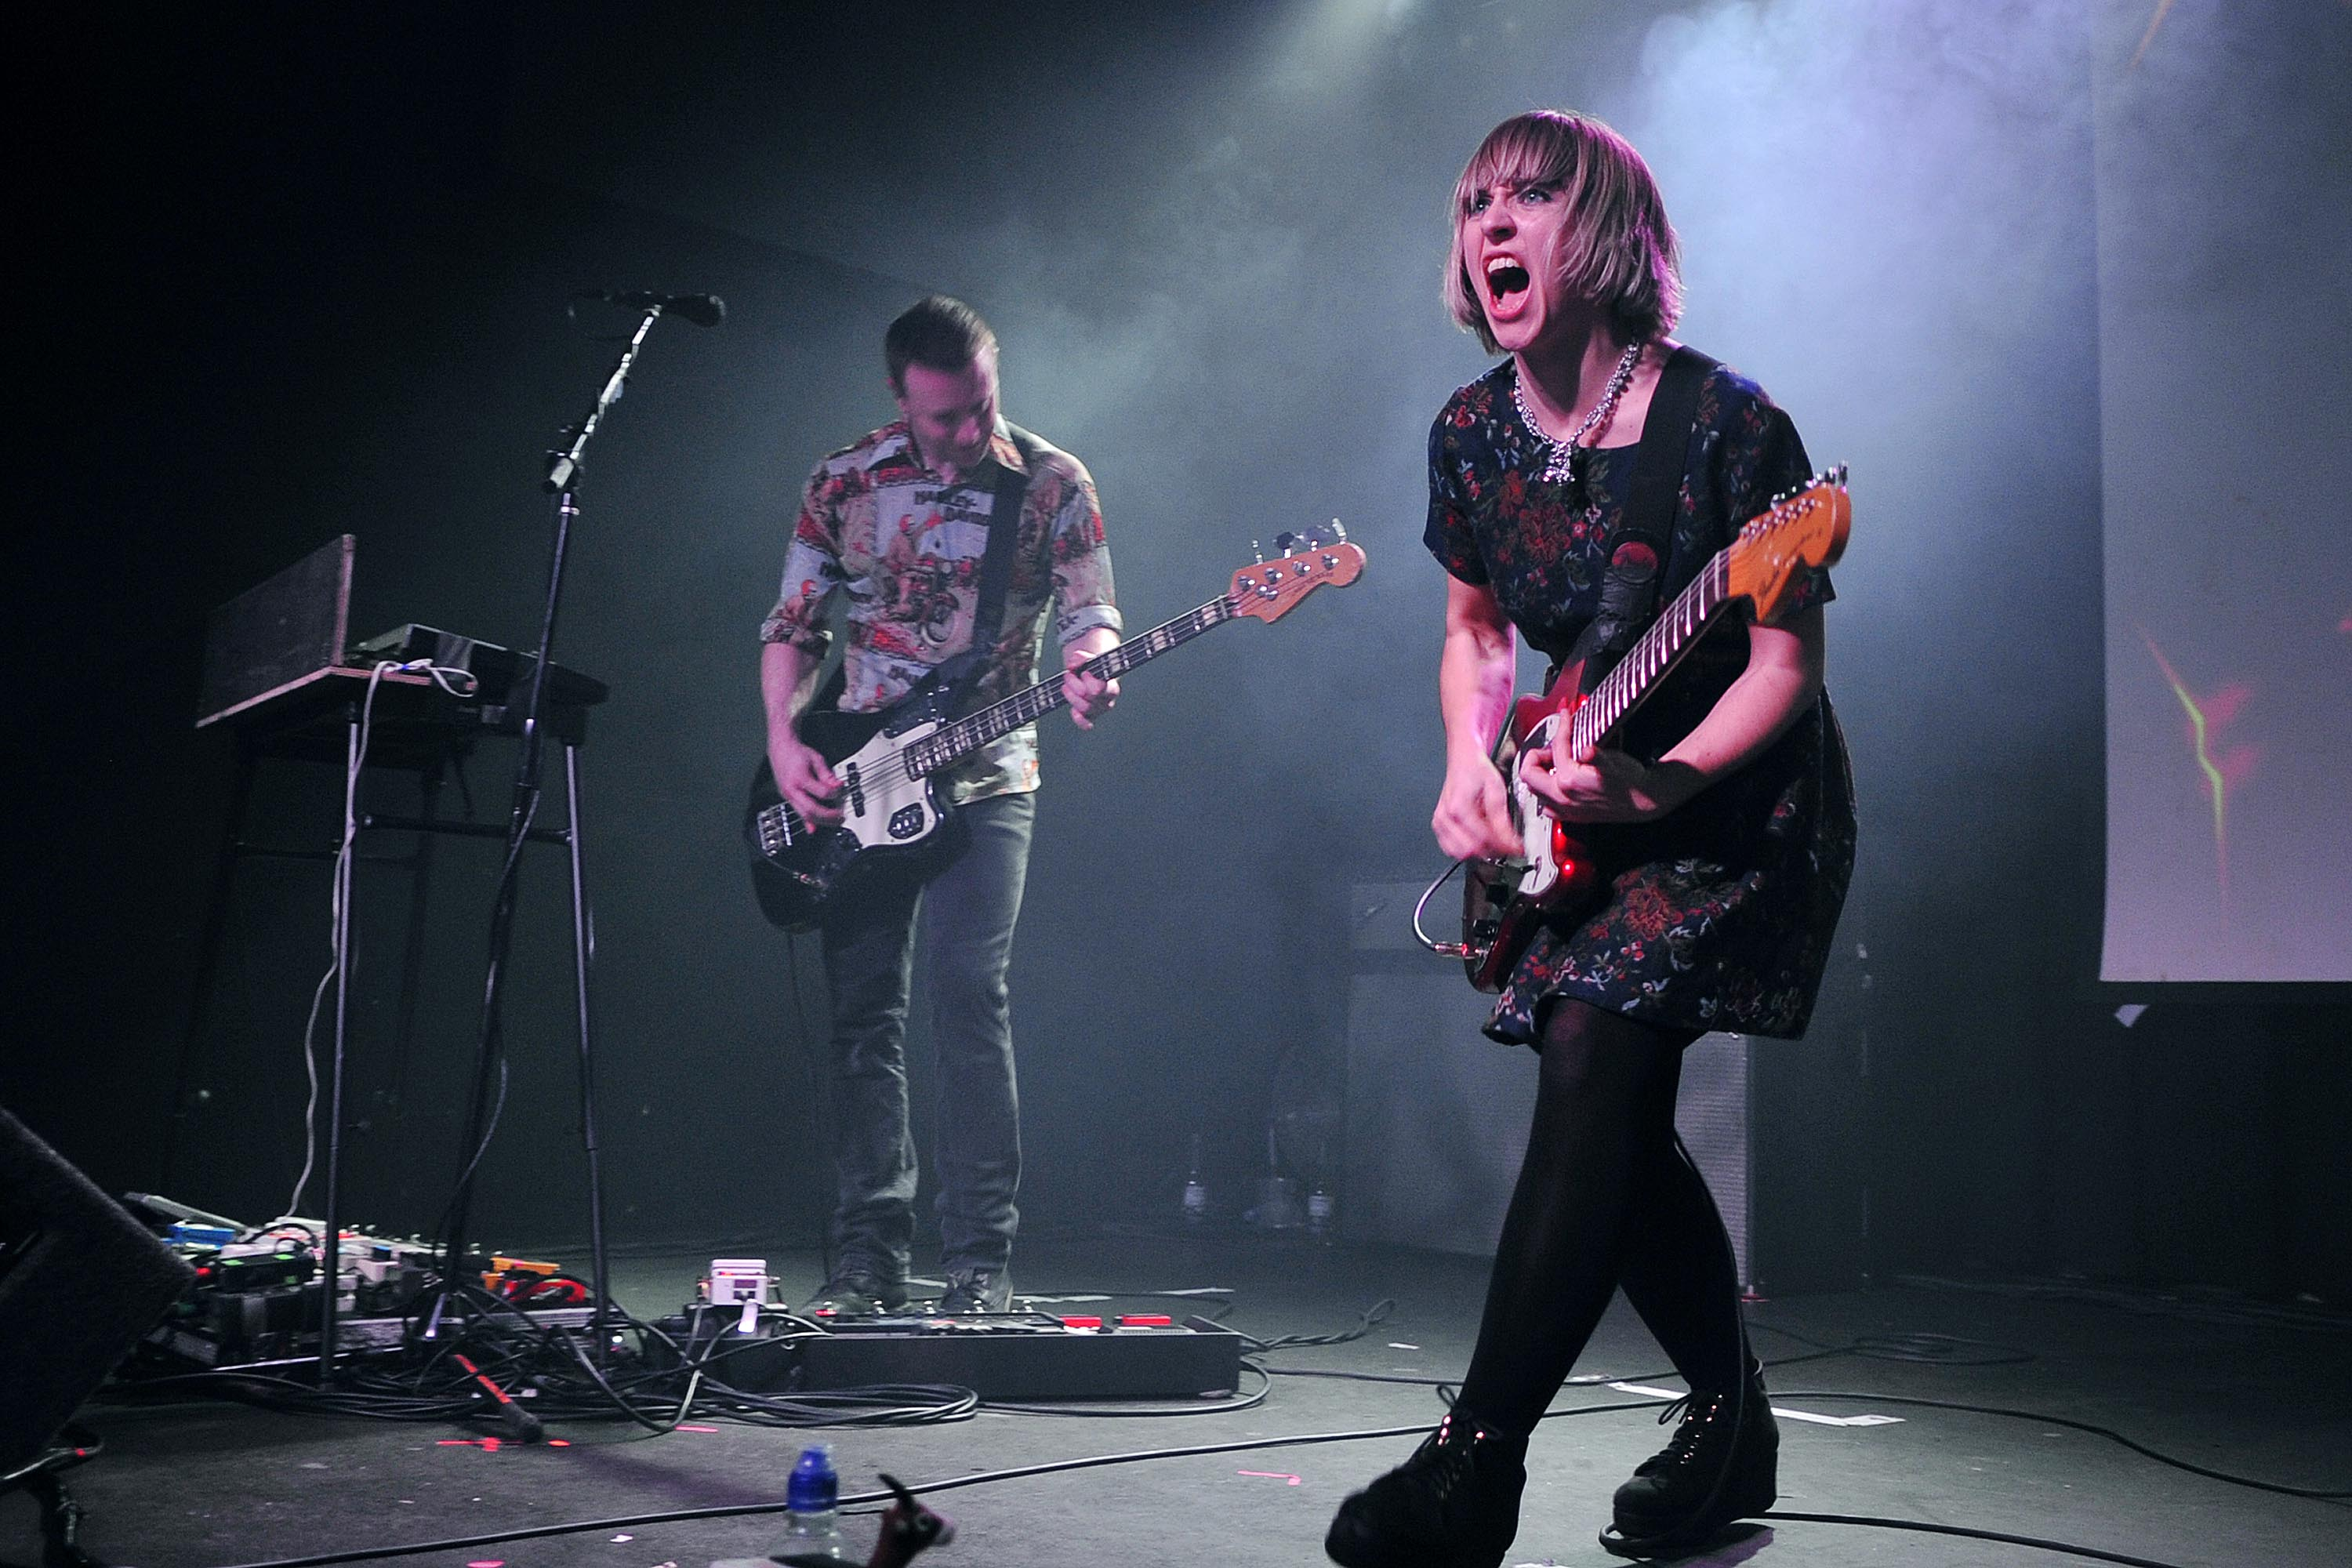 Ritzy Bryan of Joy Formidable Talks Music Business, Relationships, and Finding Her Sound